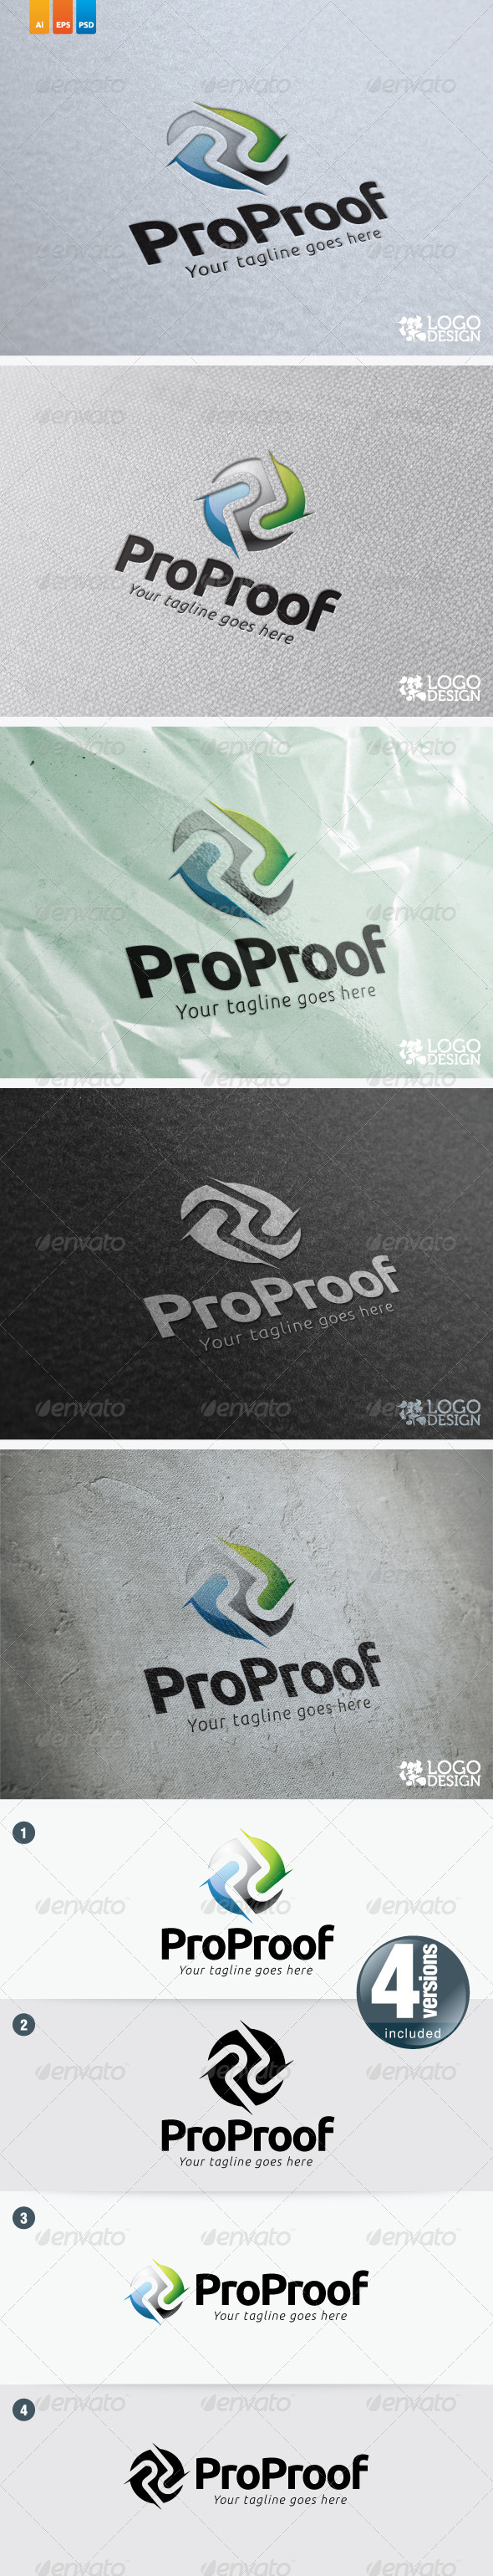 Pro Proof - Vector Abstract